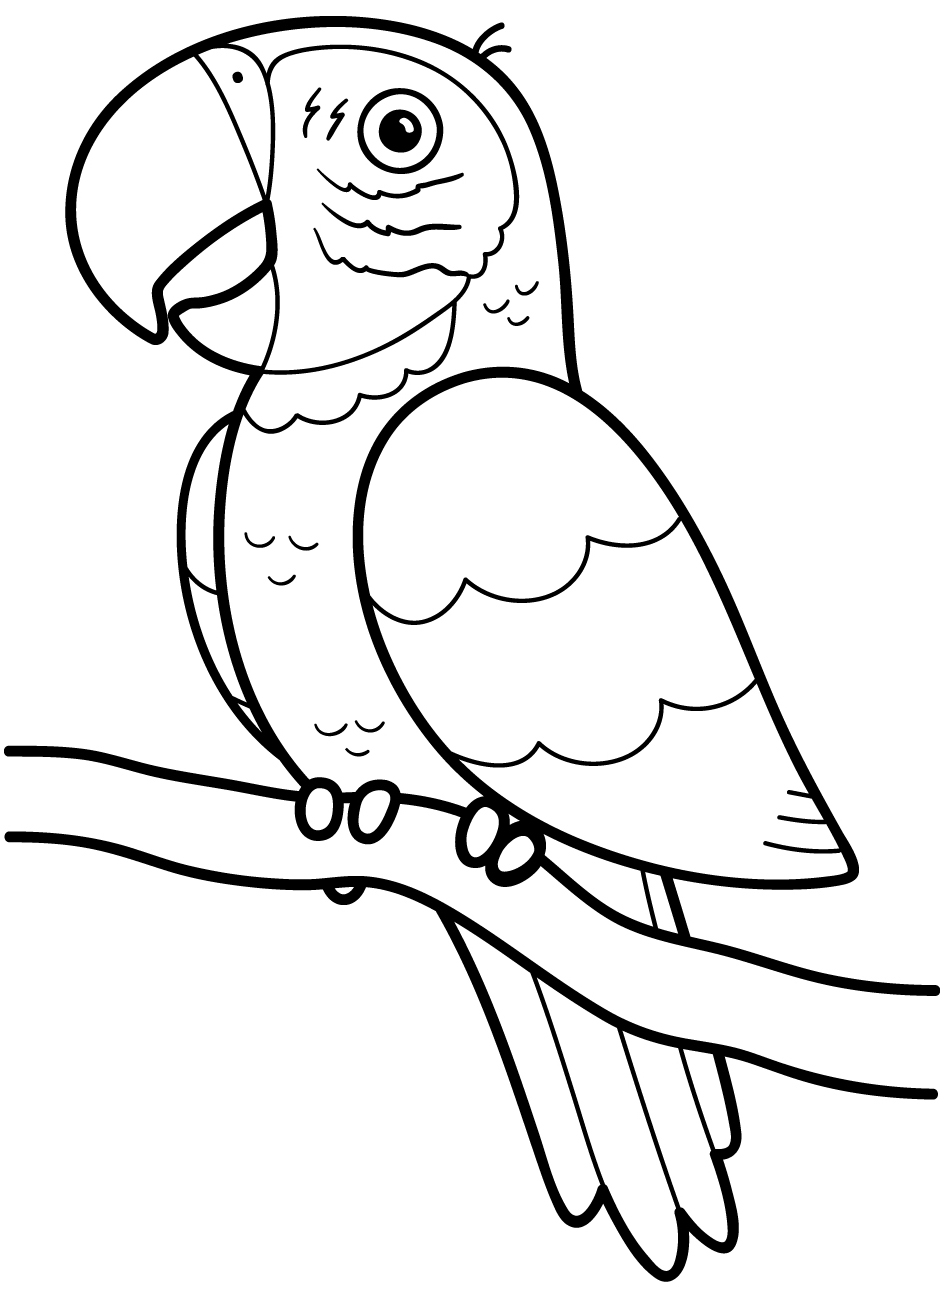 Black and White Parrot